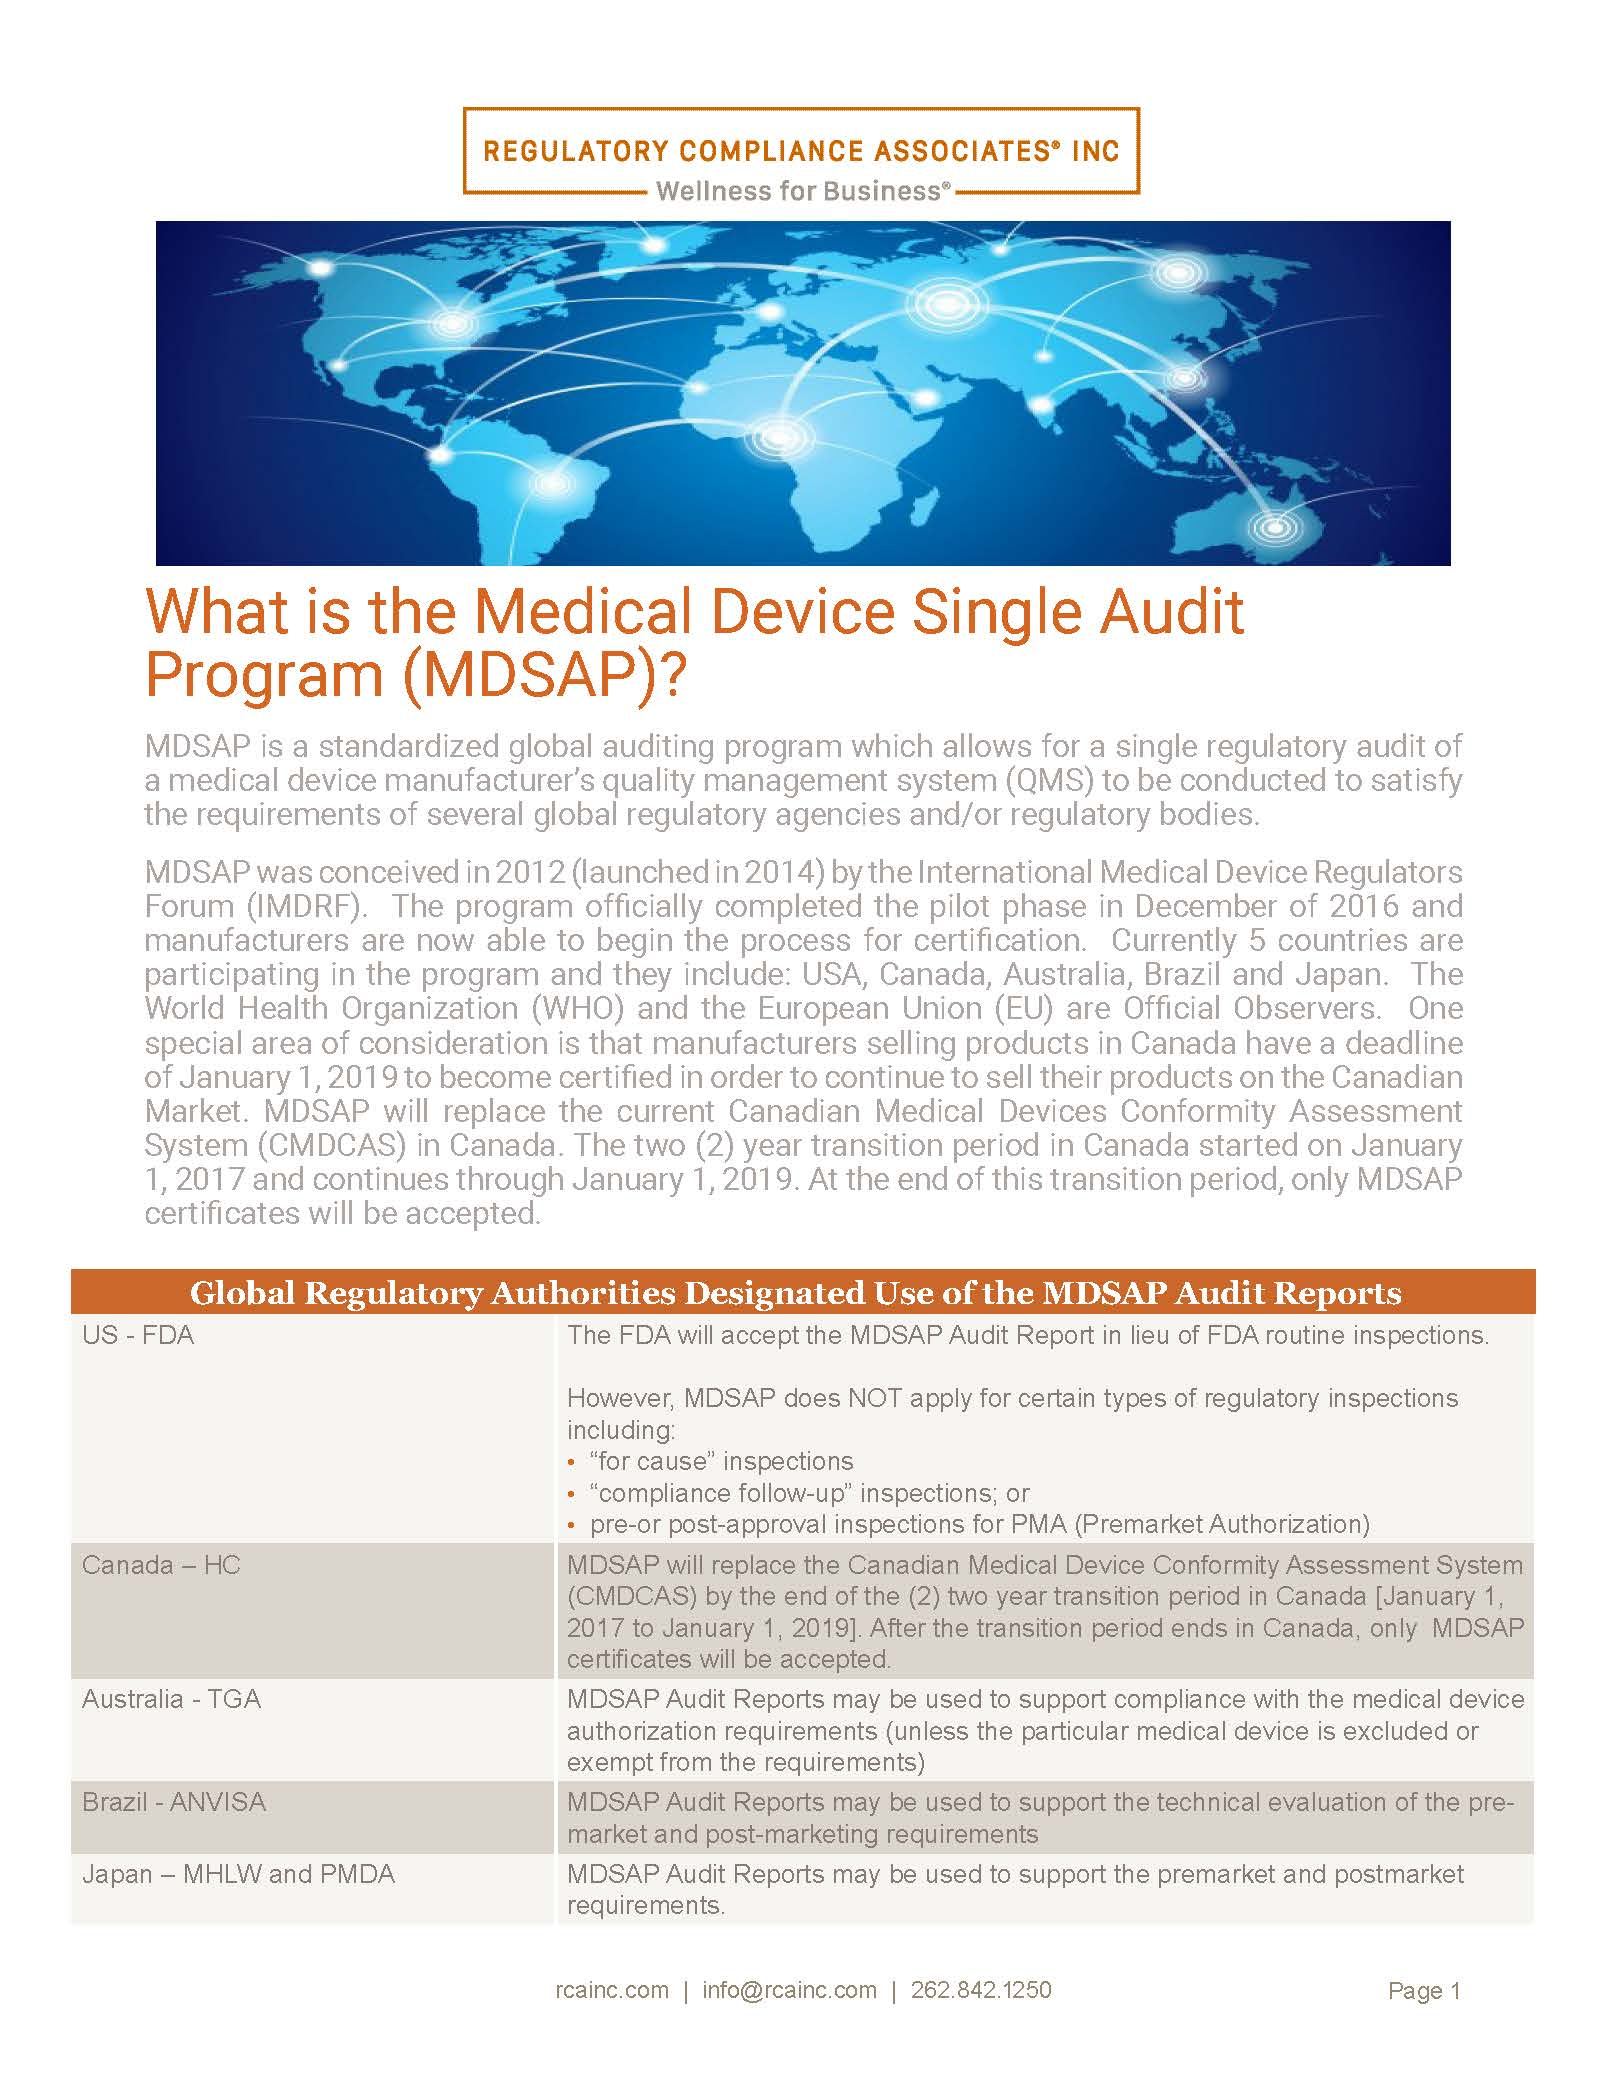 What is the Medical Device Single Audit Program (MDSAP)?